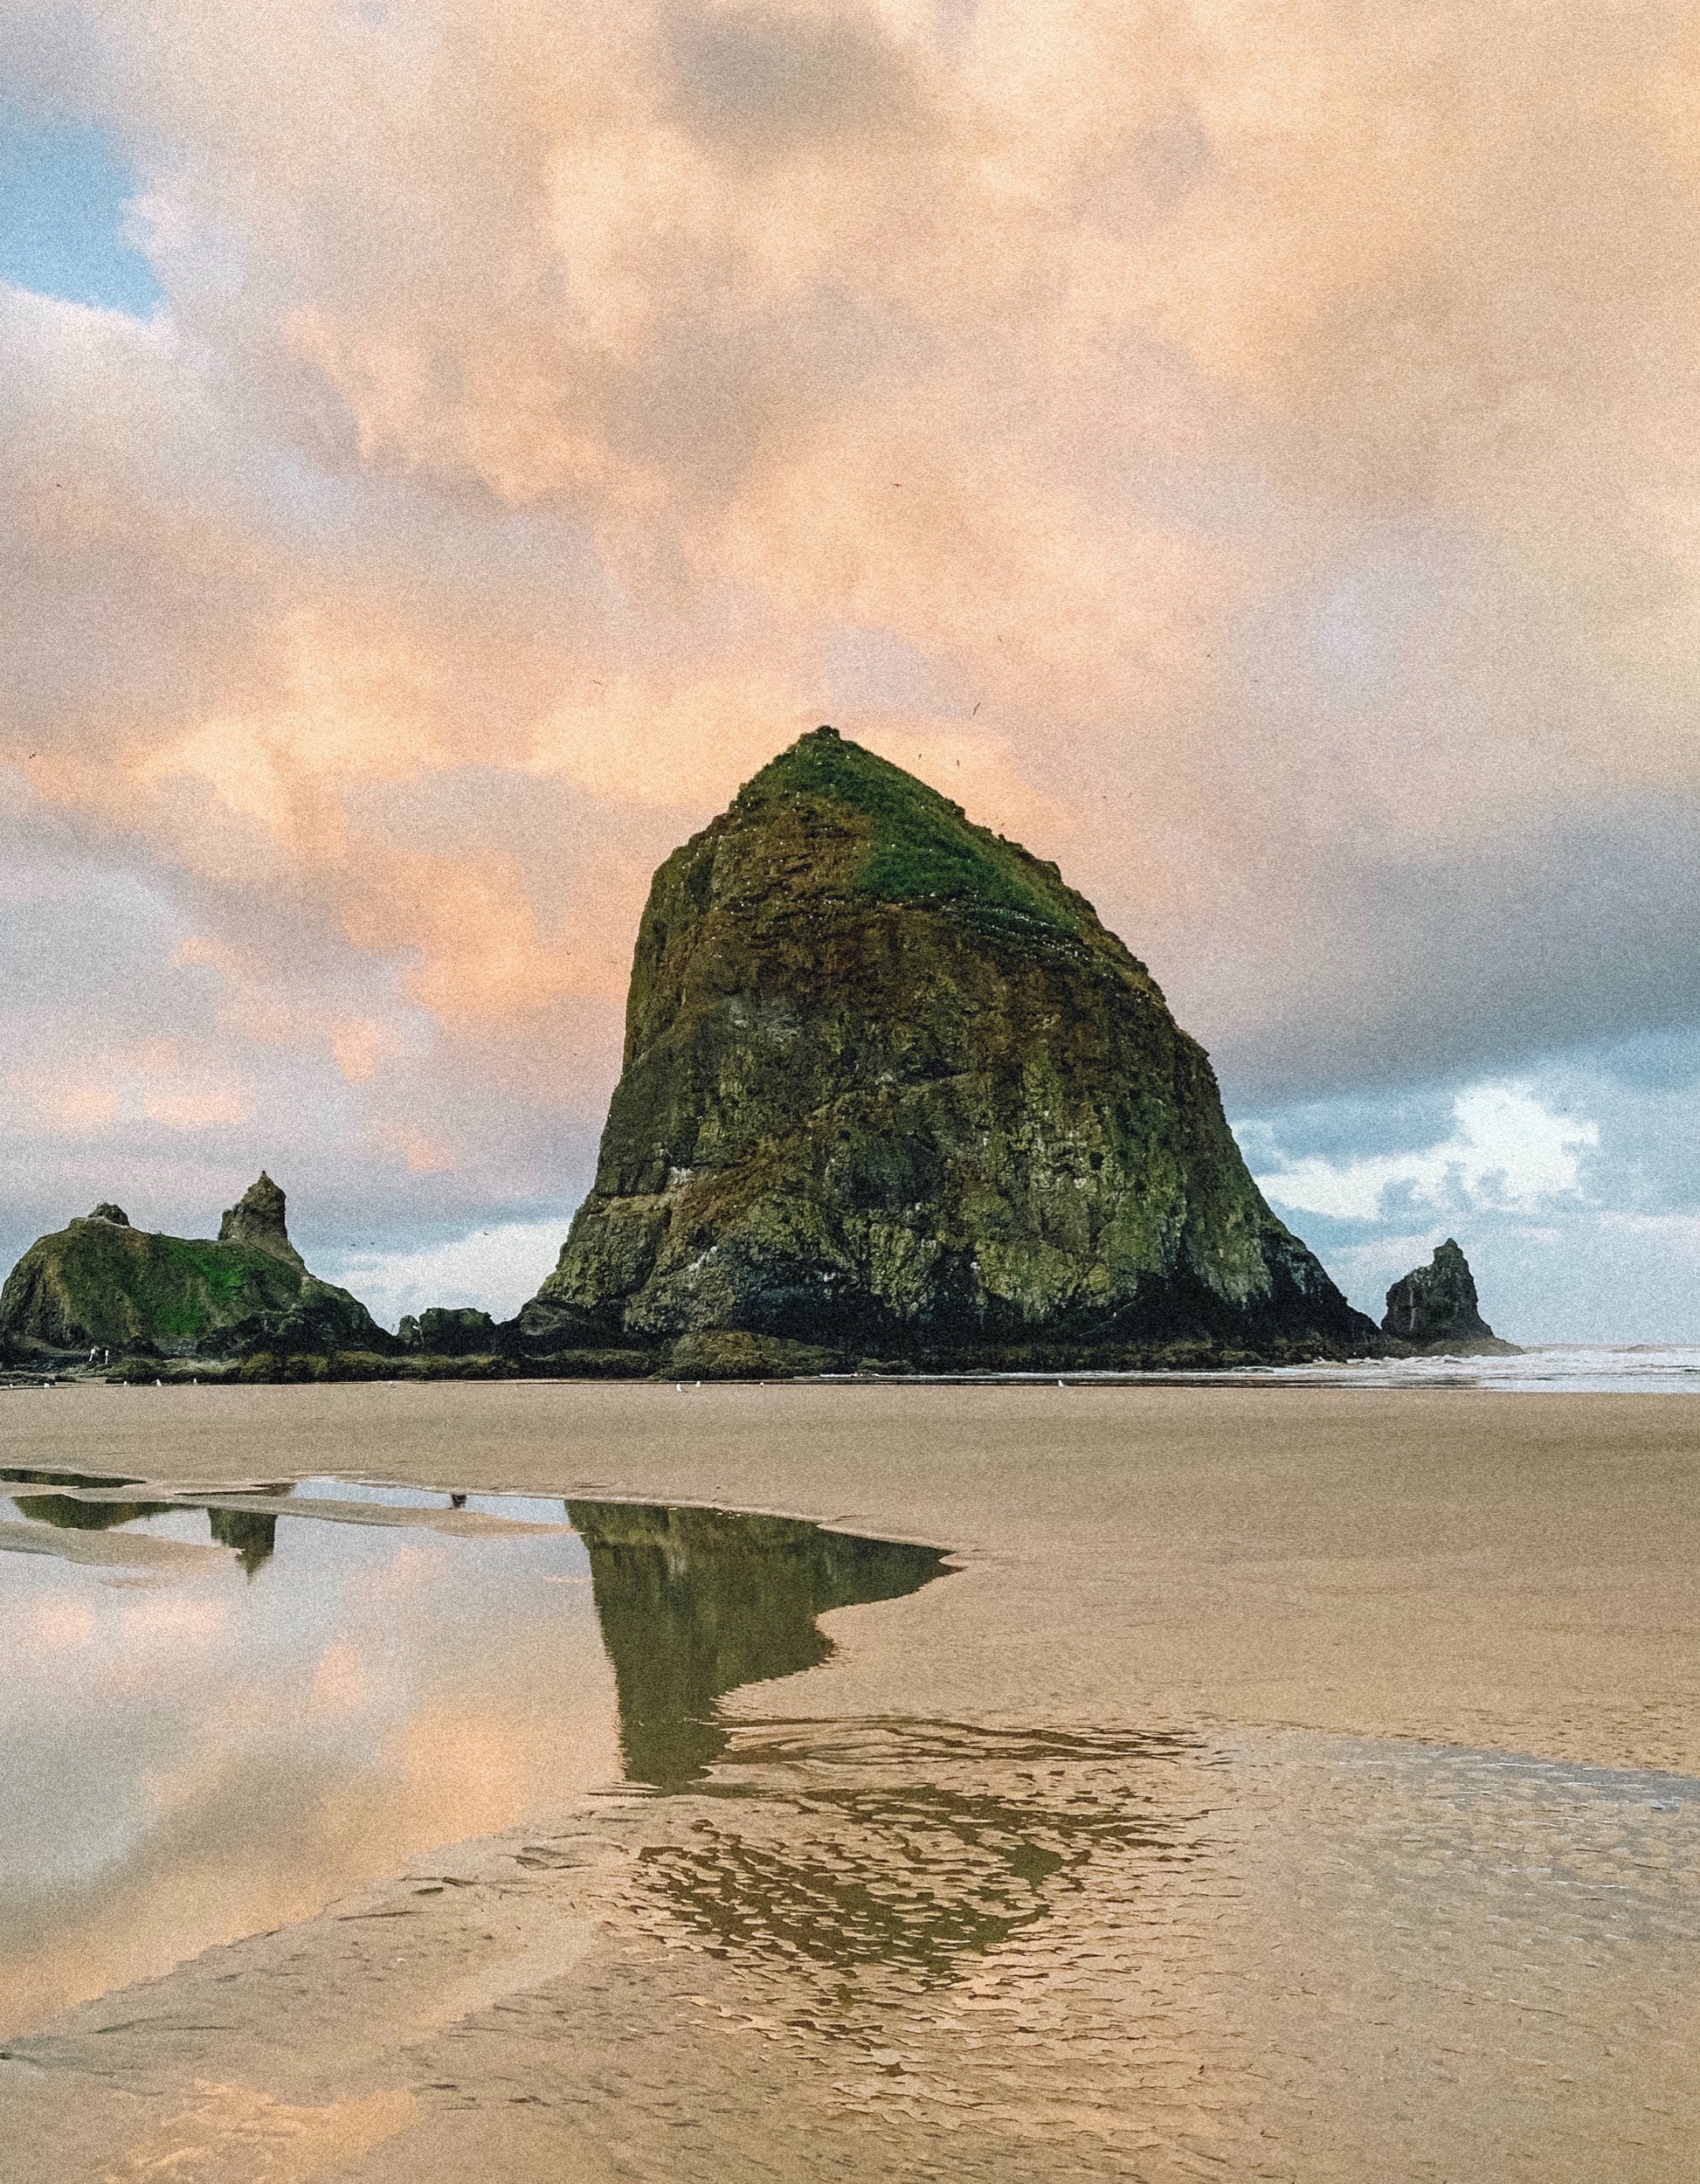 Pictured: Haystack Rock at Cannon Beach, OR